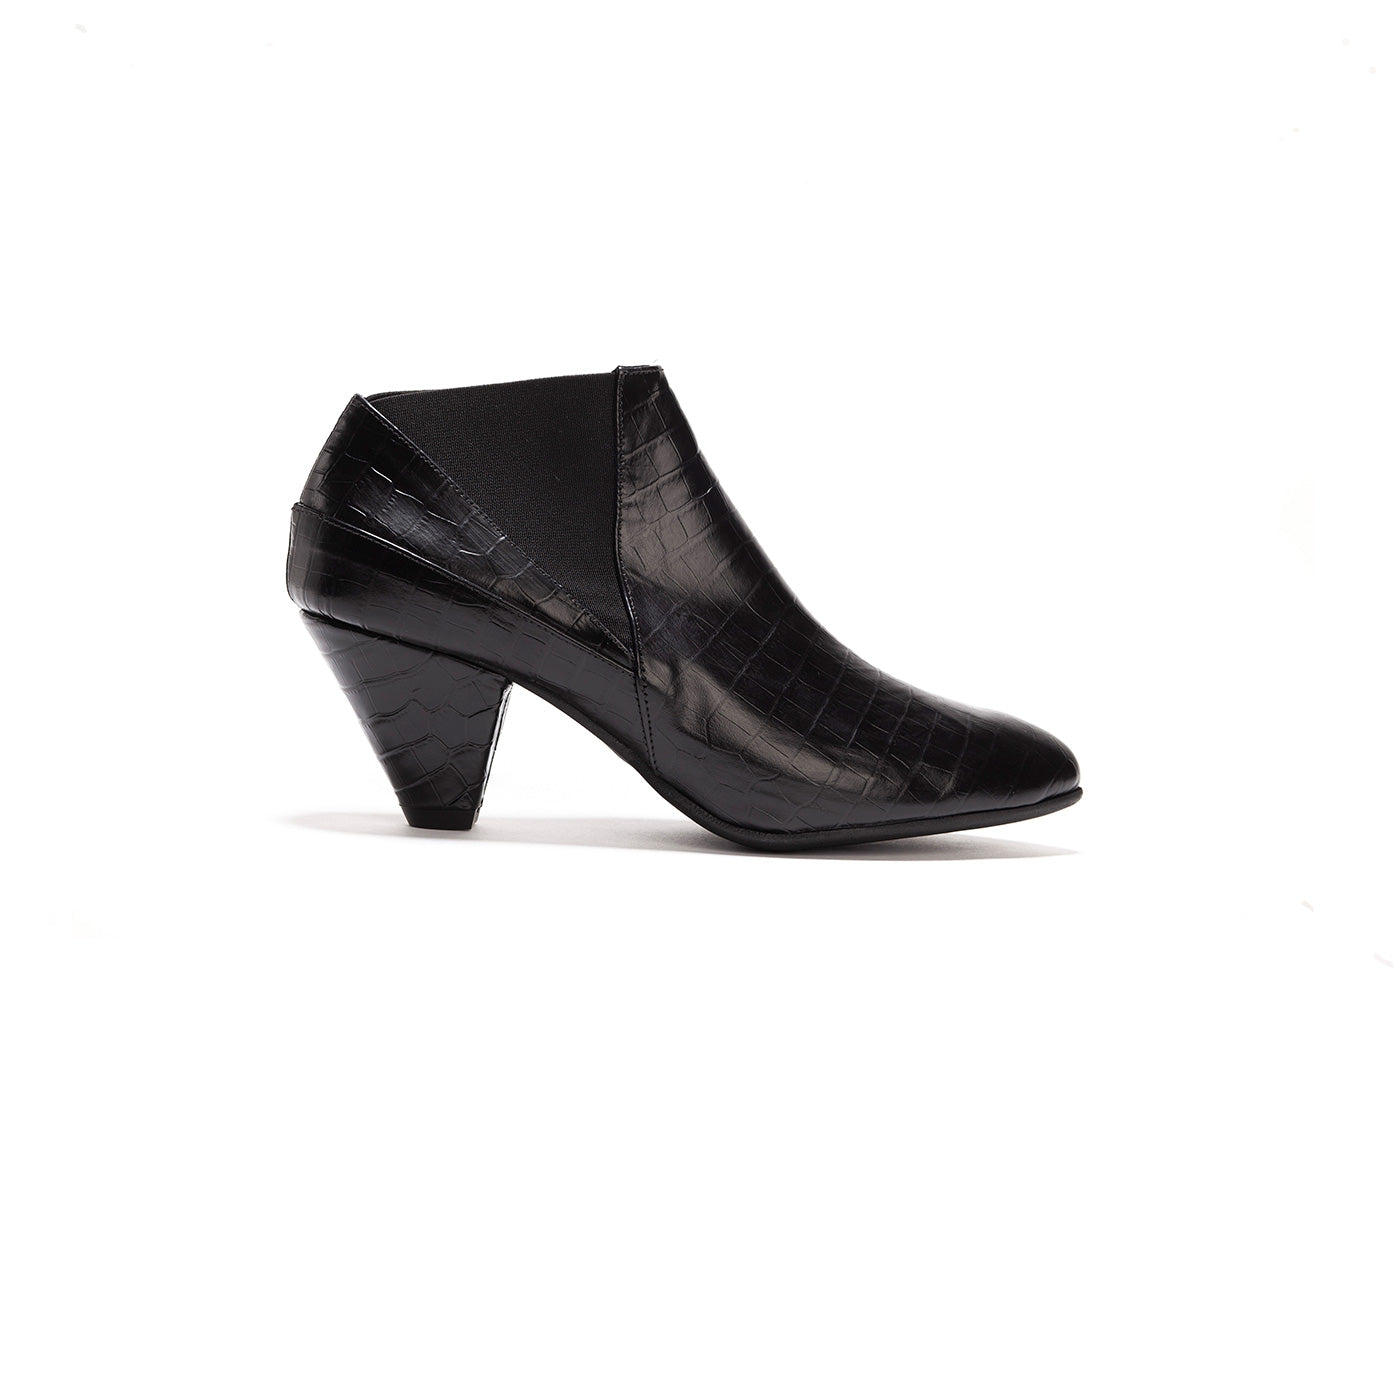 Annabelle - Black Leather Ankle Heels